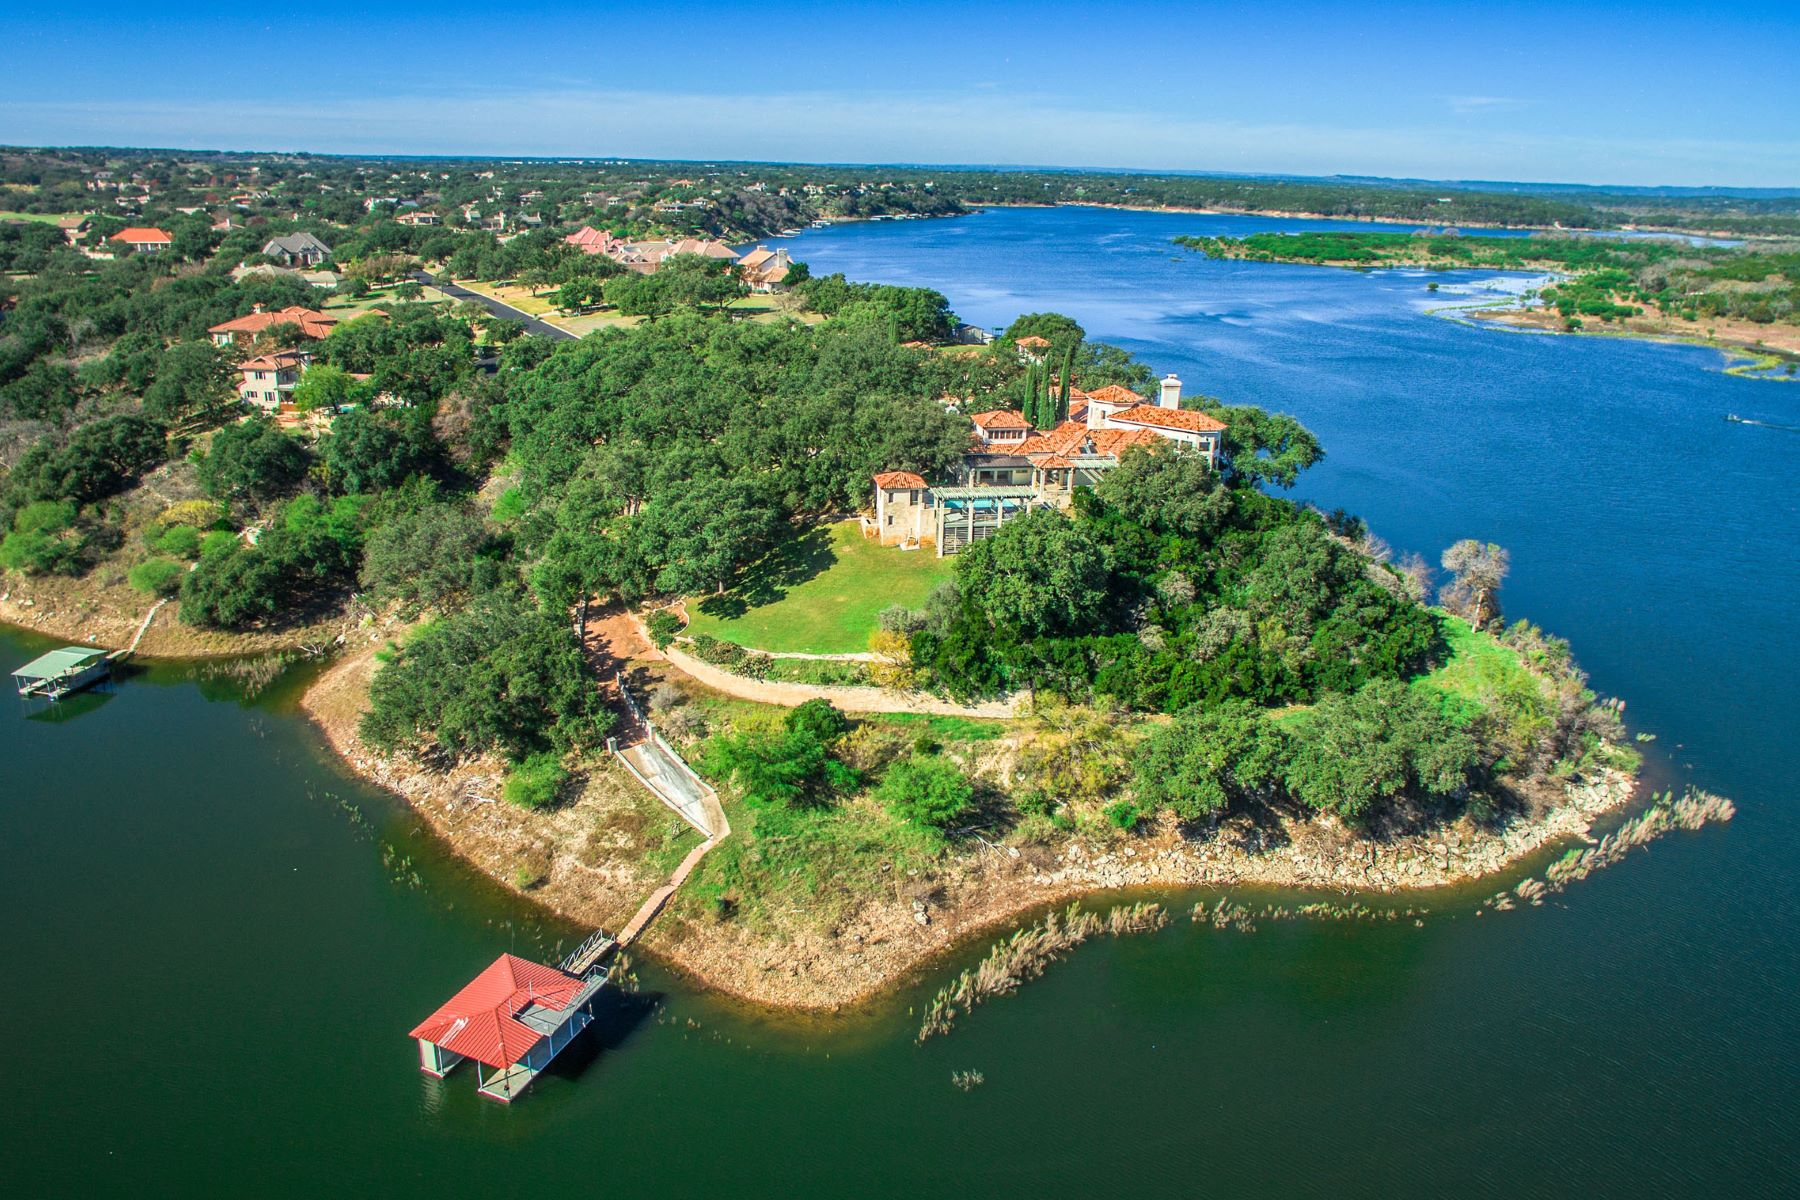 Single Family Home for Sale at Gated Estate on Lake Travis Peninsula 26100 Countryside Dr Spicewood, Texas 78669 United States